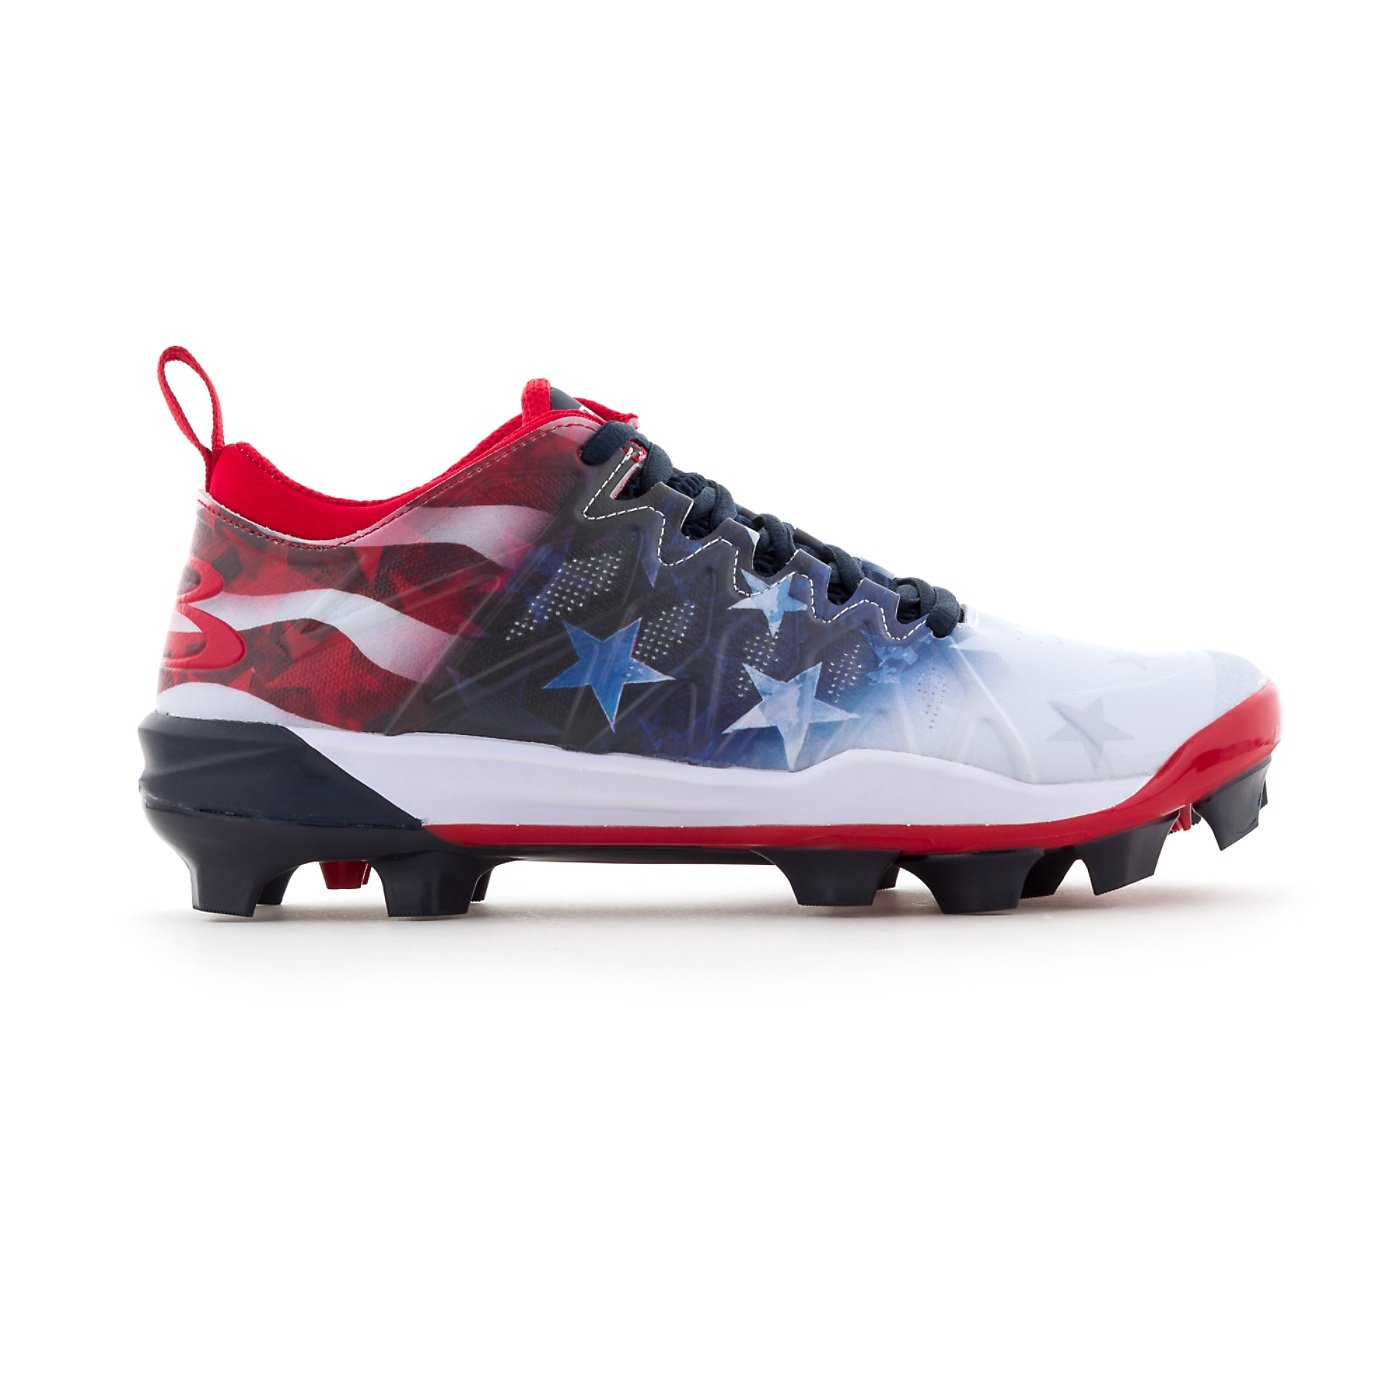 Boombah Women's Squadron Flag Molded Cleats Royal Blue/Red/White - Size 7.5 by Boombah